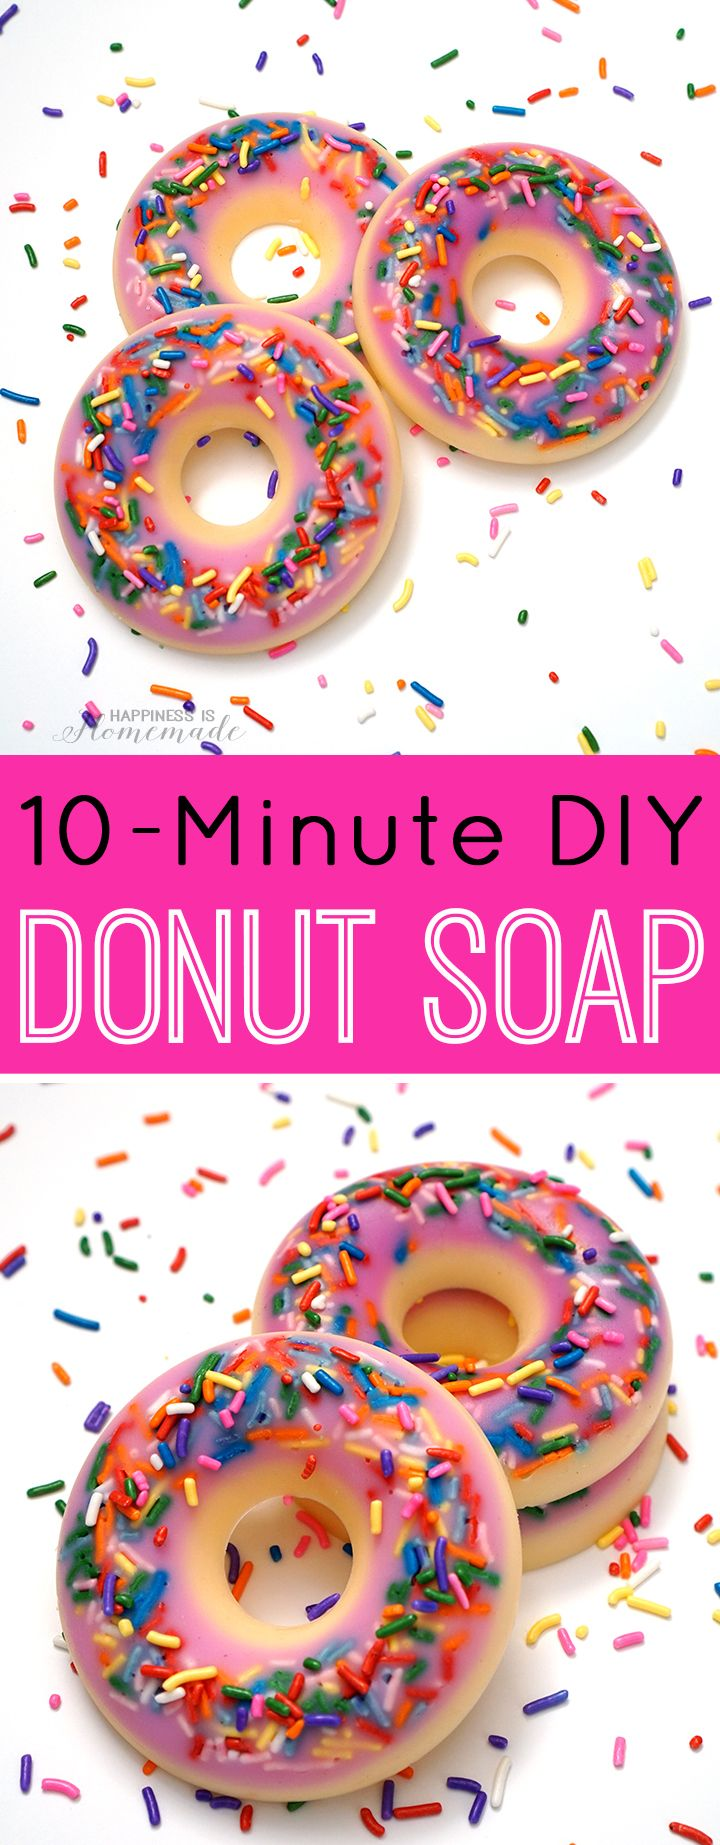 Diy donut scented soap diy donuts donut shape and donuts for Easy presents to make for friends